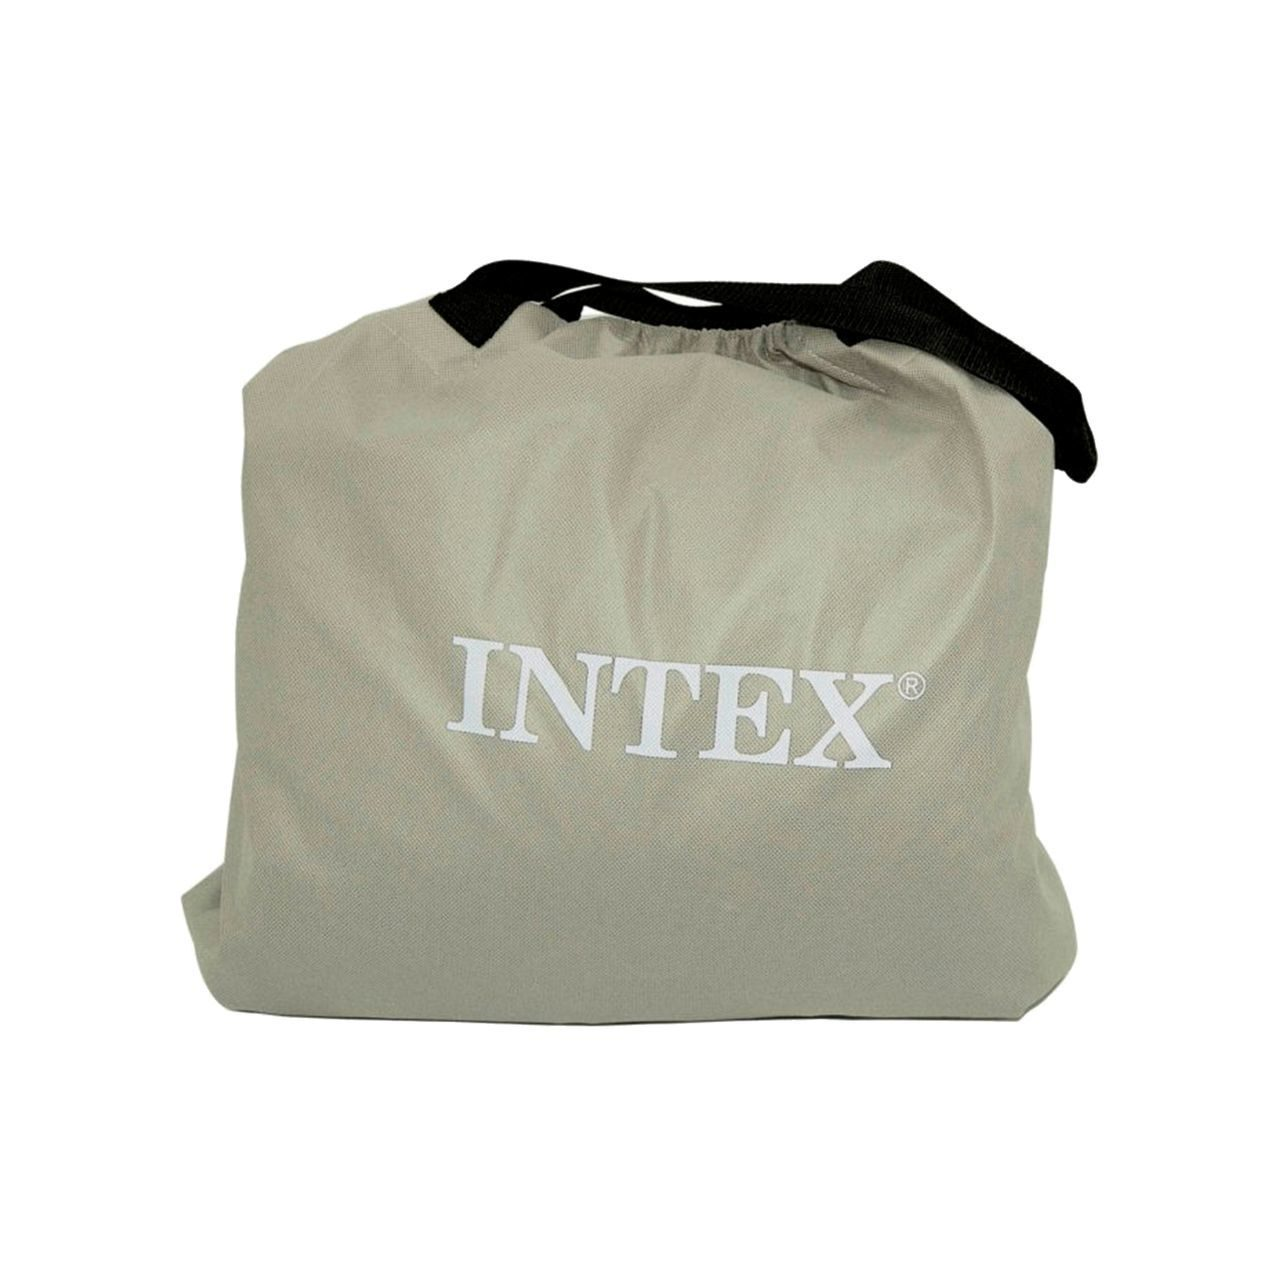 Intex_airbed_bag